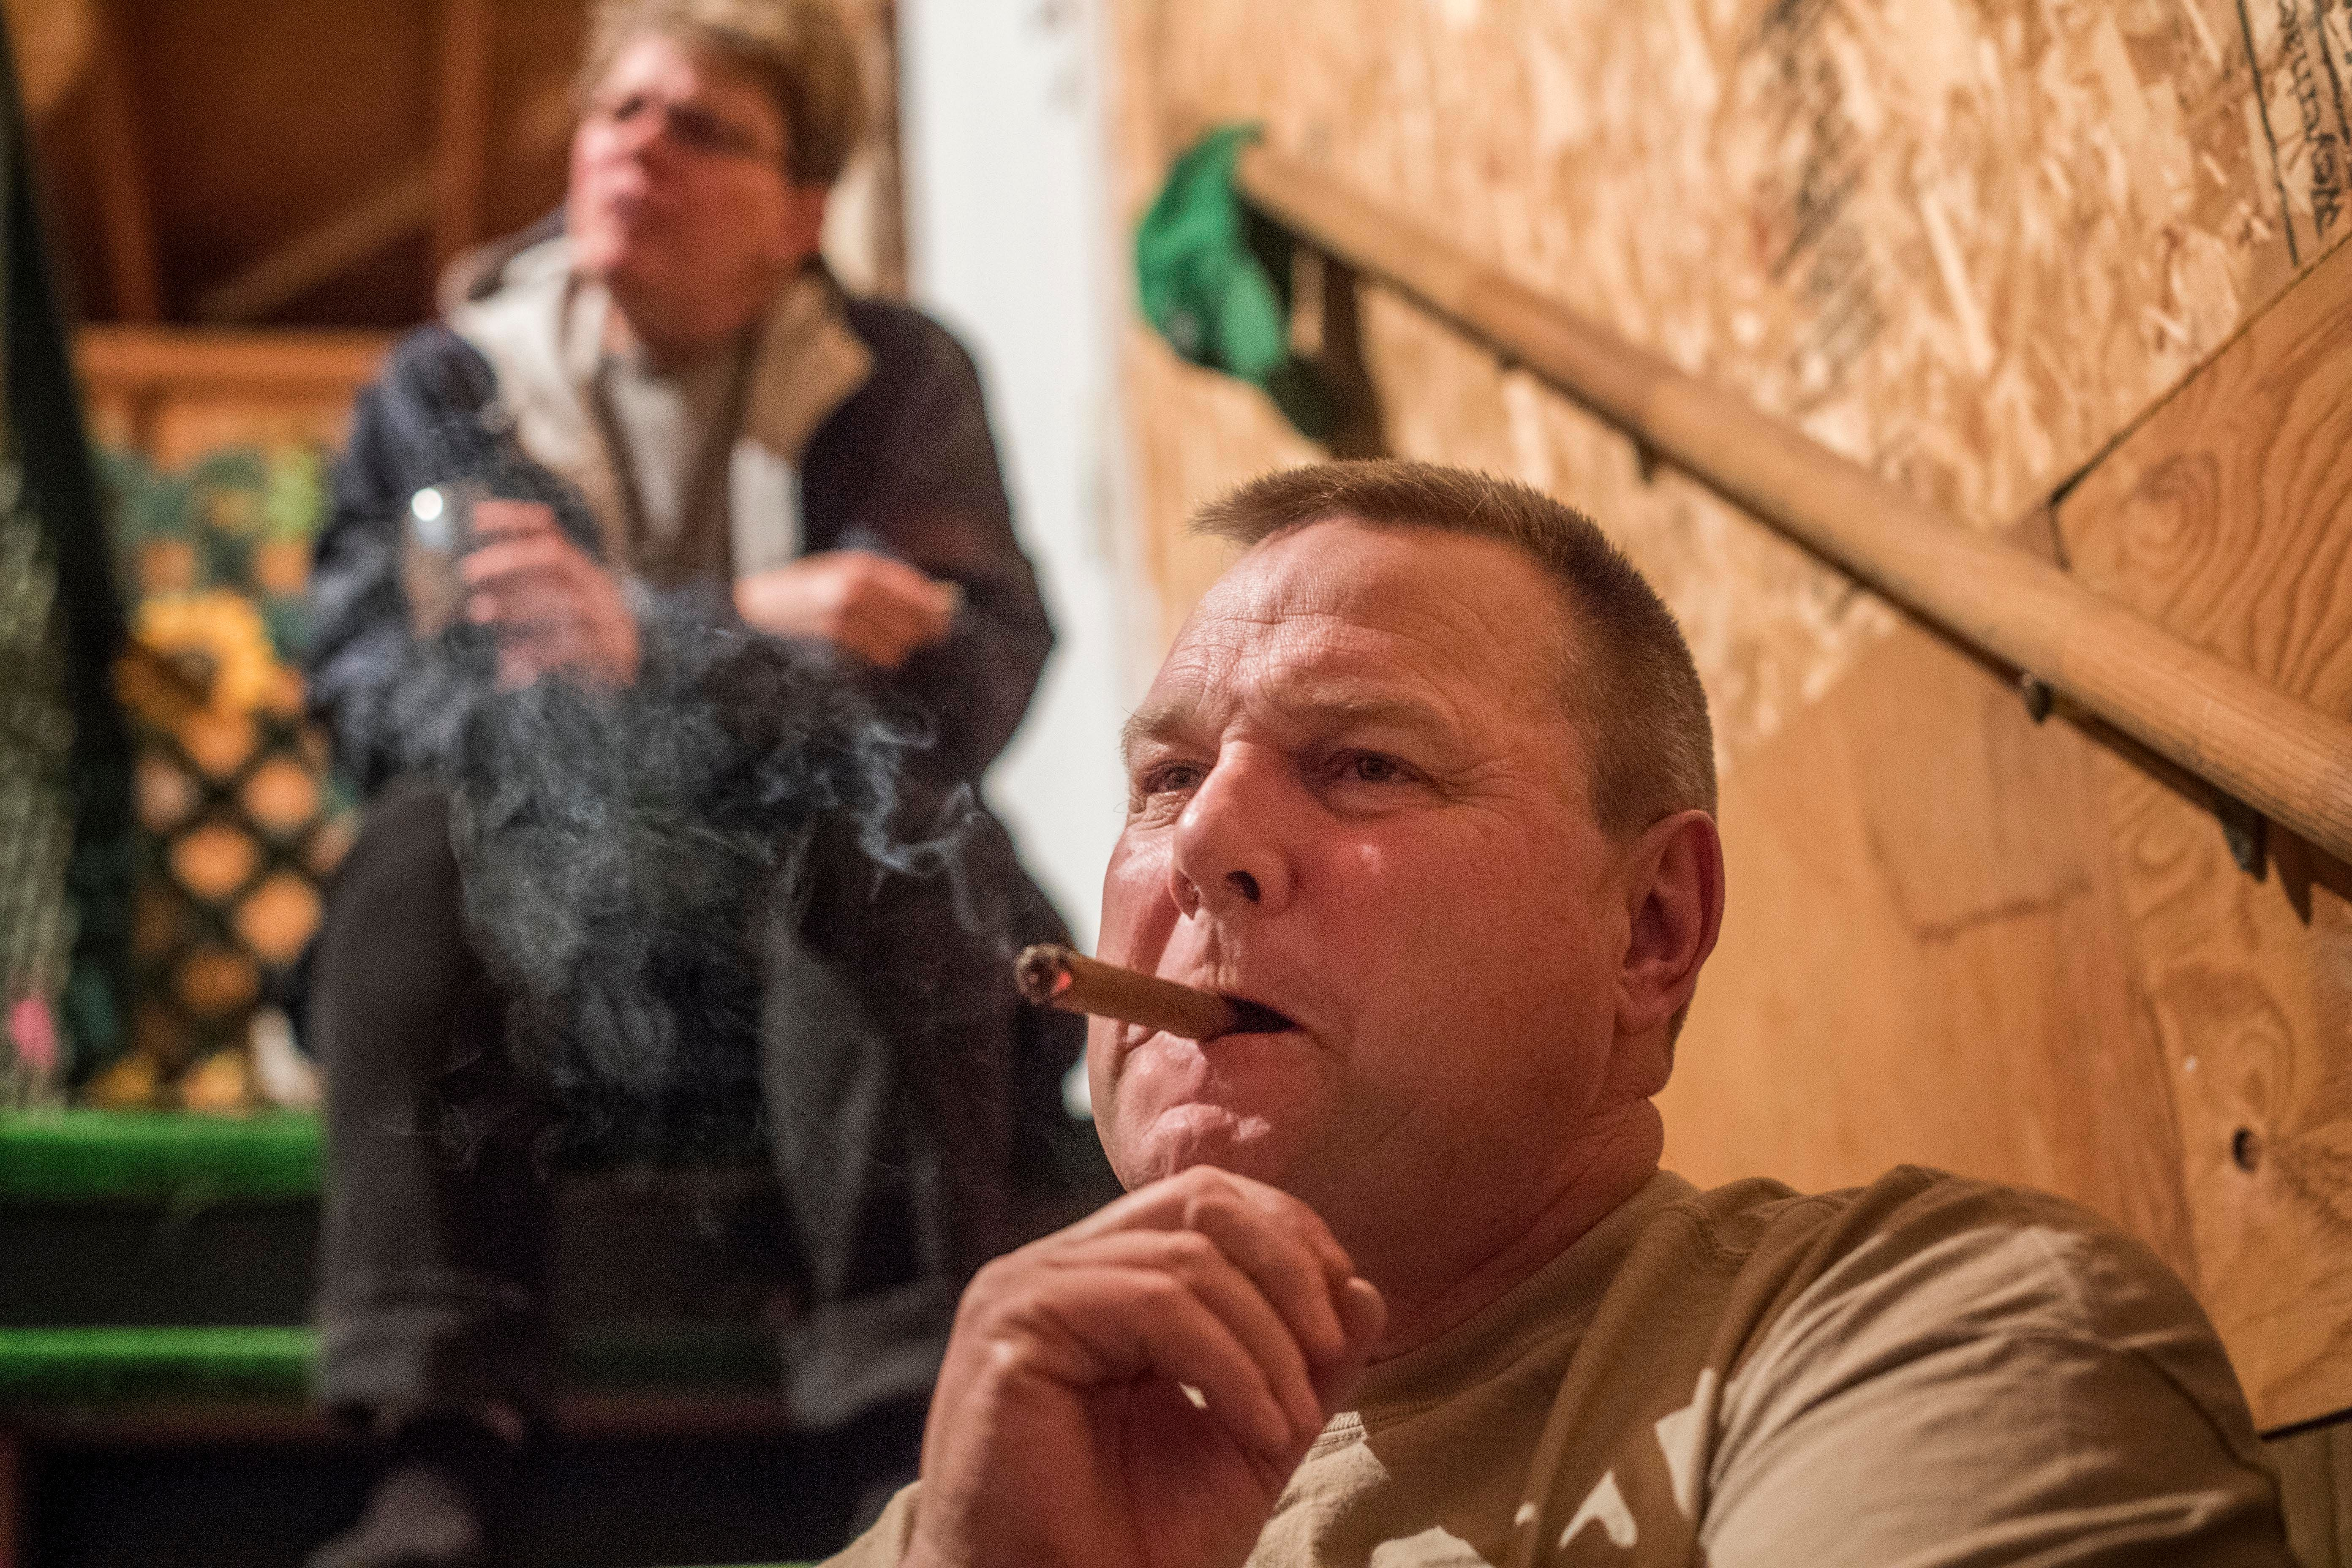 BIG SANDY, MONTANA - After a long day of farm work, Sharla Tester and Senator Jon Tester (D-MT) enjoy after dinner conversation, and a cigar, in their garage on their farm in Big Sandy, Montana Thursday April 13, 2017. (Photo by Melina Mara/The Washington Post via Getty Images)